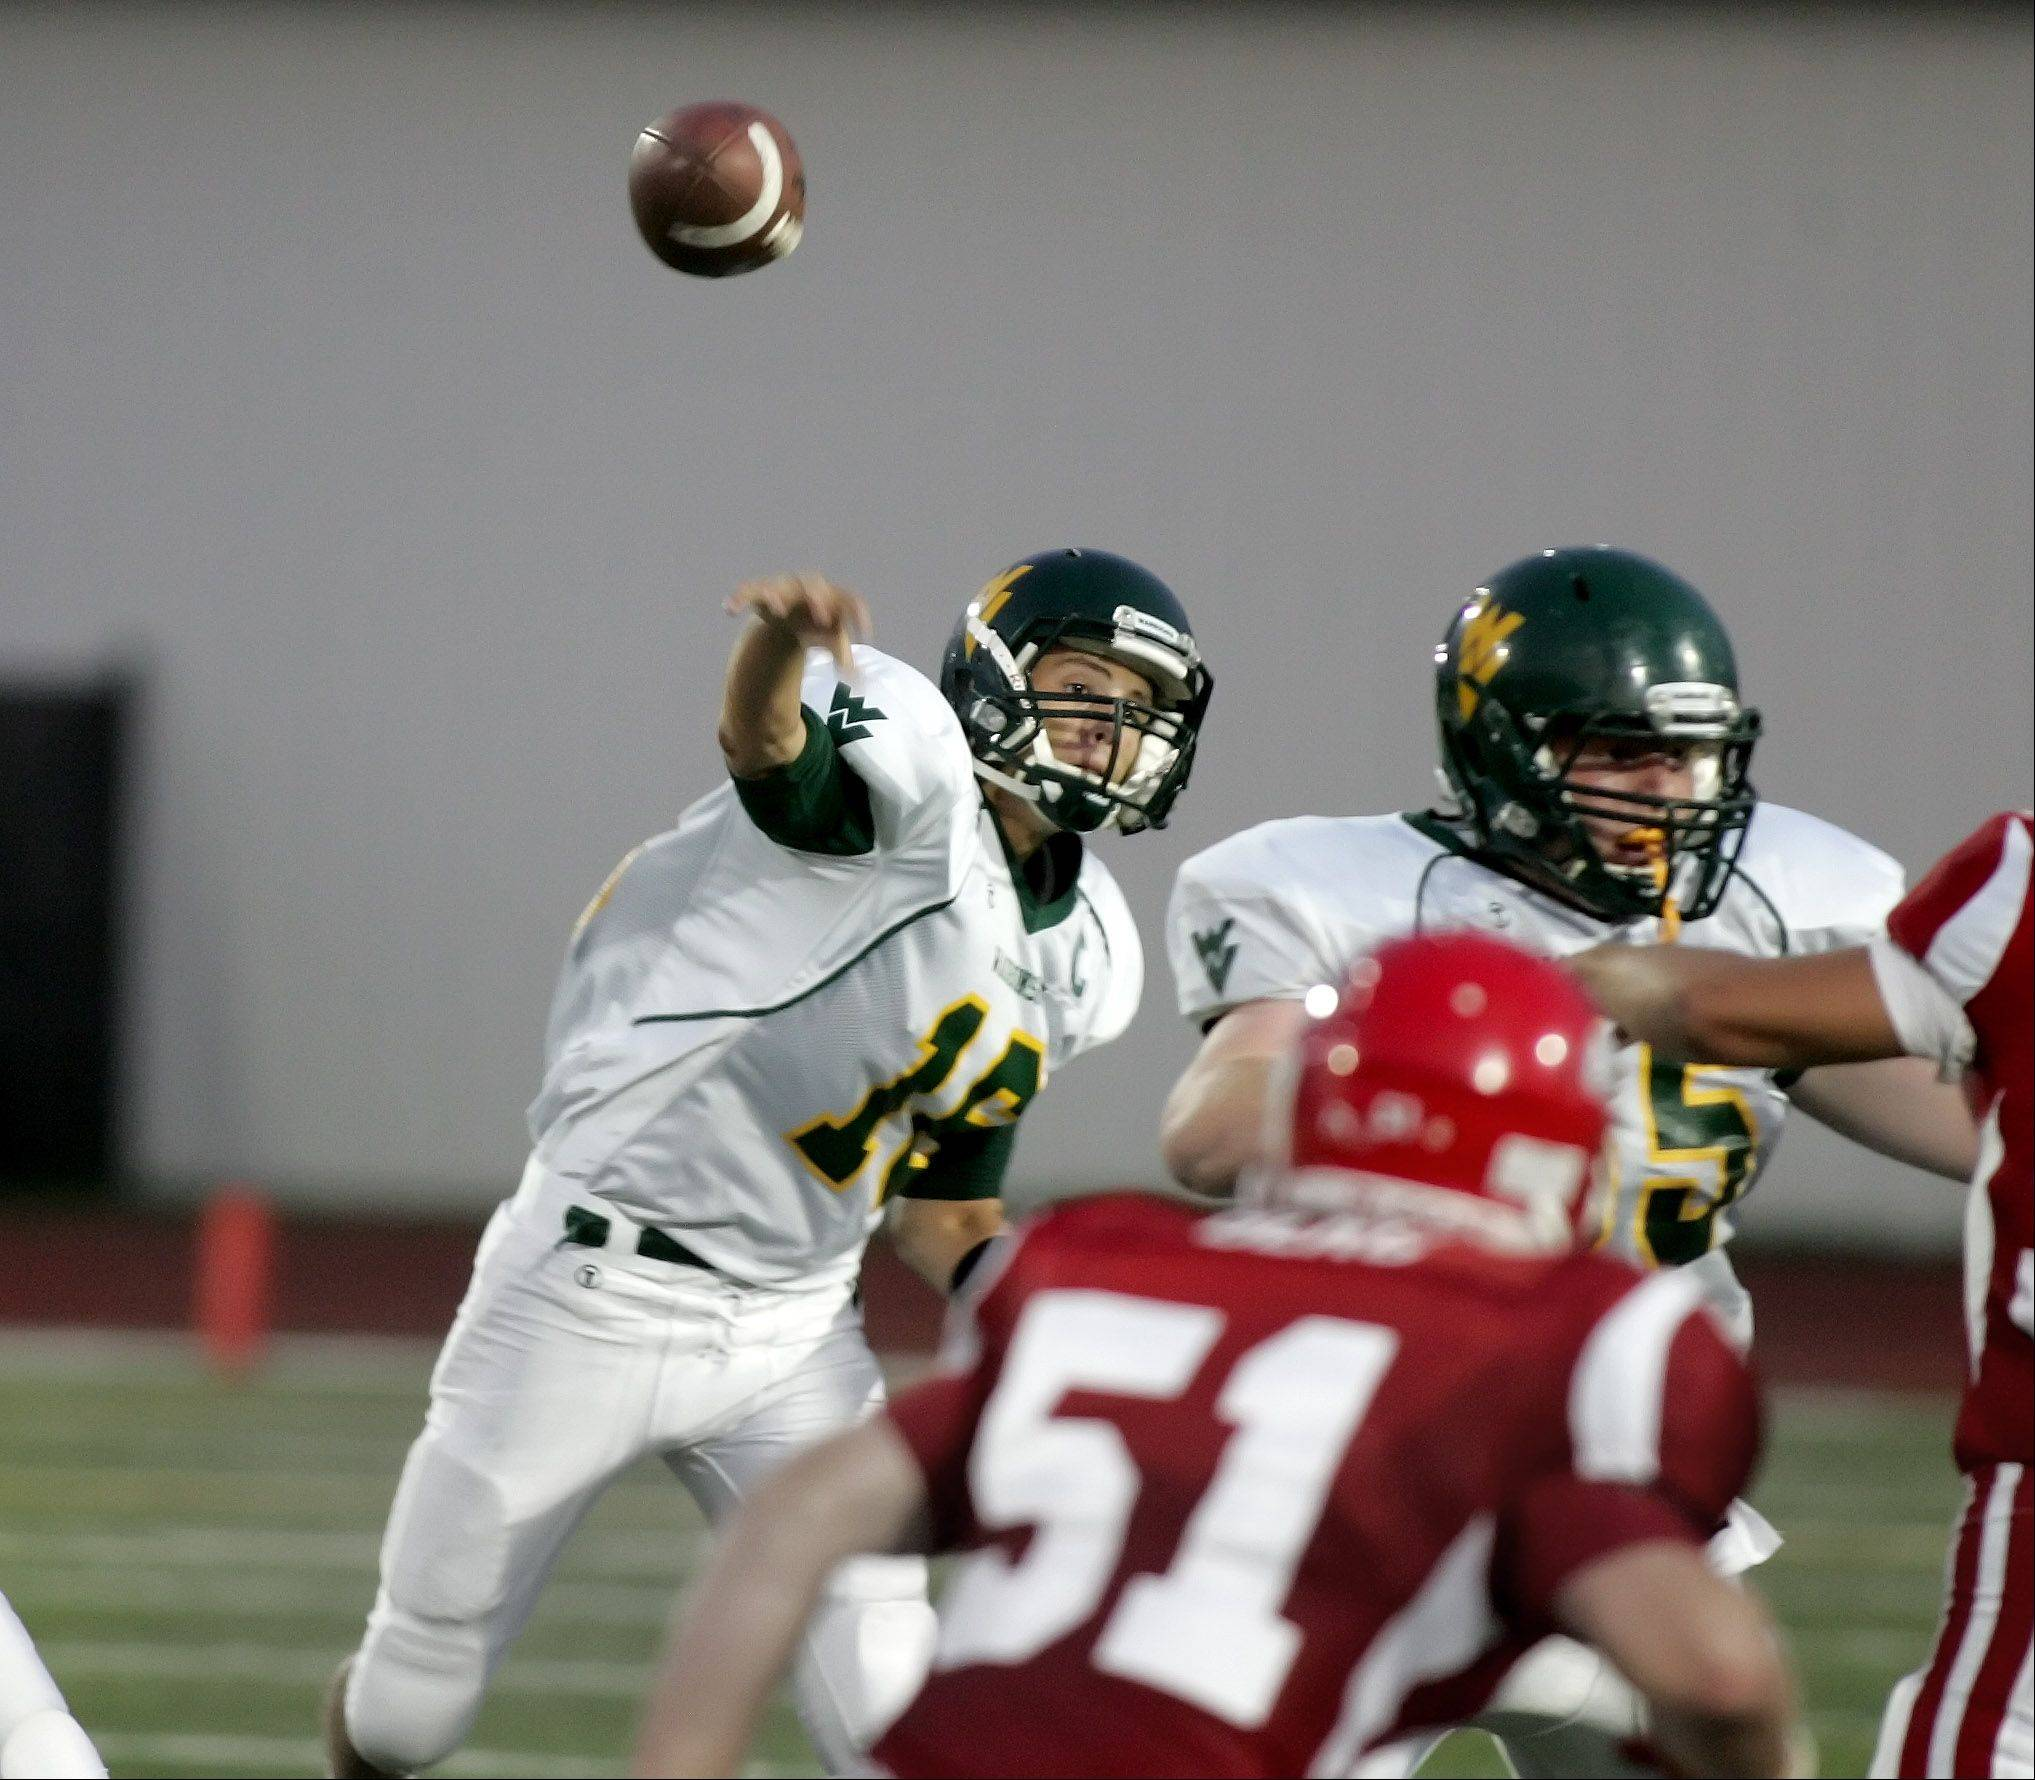 Week 1- Waubonsie Valley quarterback Mitch Stefani throws a pass against Naperville Central.